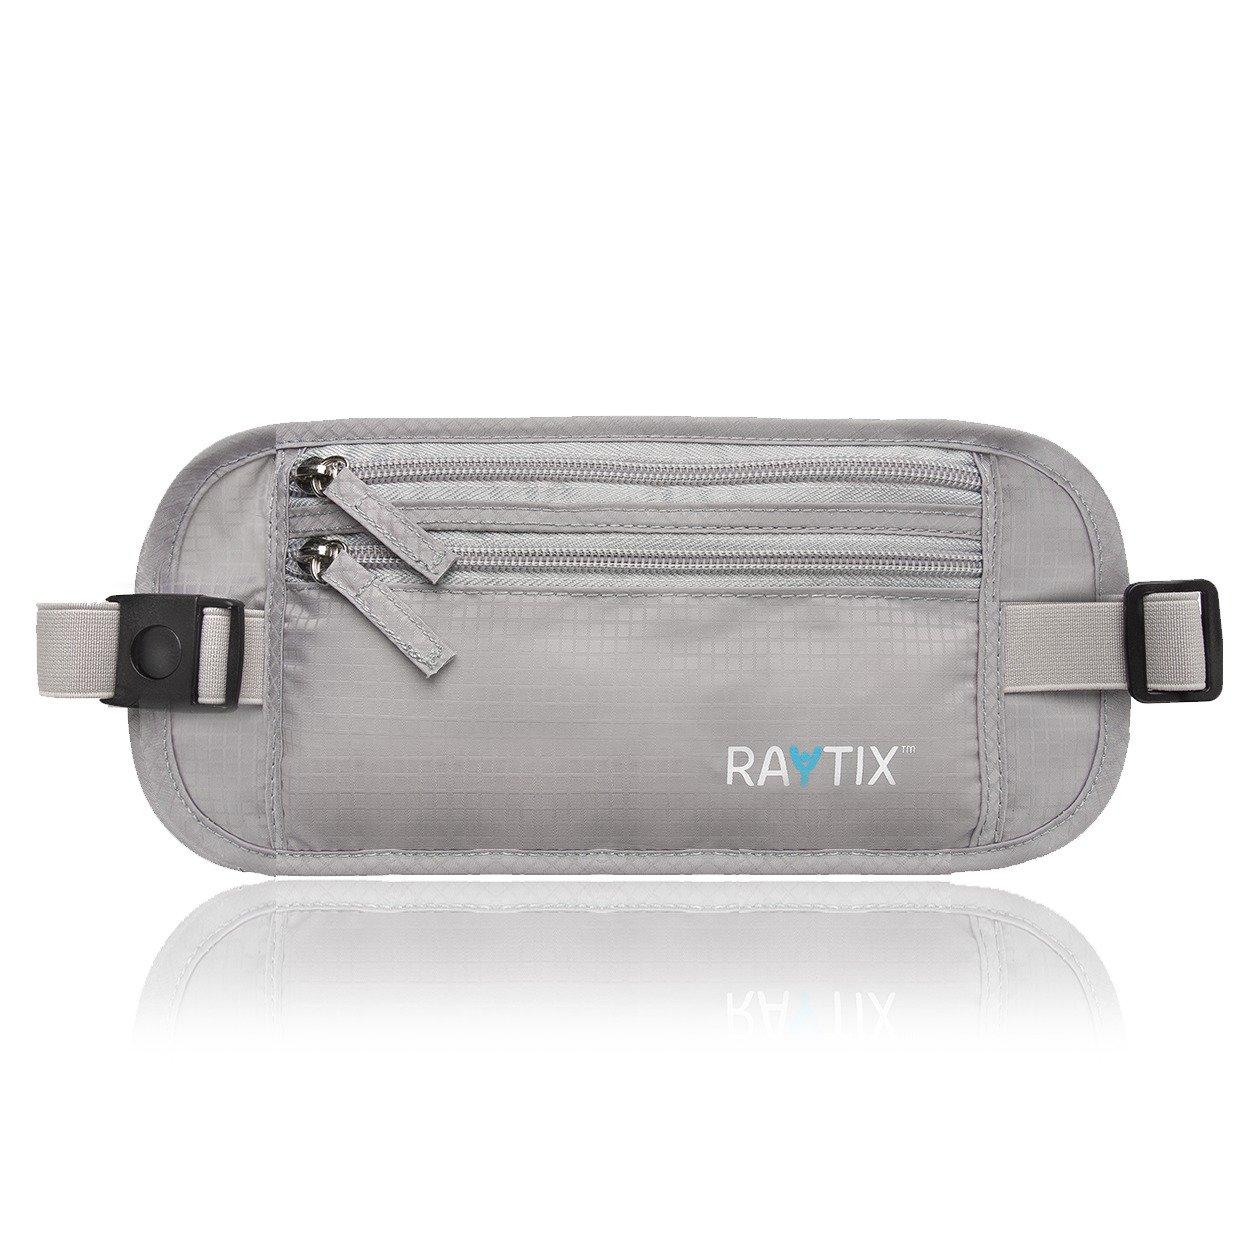 Travel Money Belt: Safe, Well Designed & Comfortable Money Carrier For Travelling & More - Blocks RFID Transmissions – Secure, Hidden Travel Wallet With Adjustable Straps, Lightweight & Thin (GRAY) by Raytix